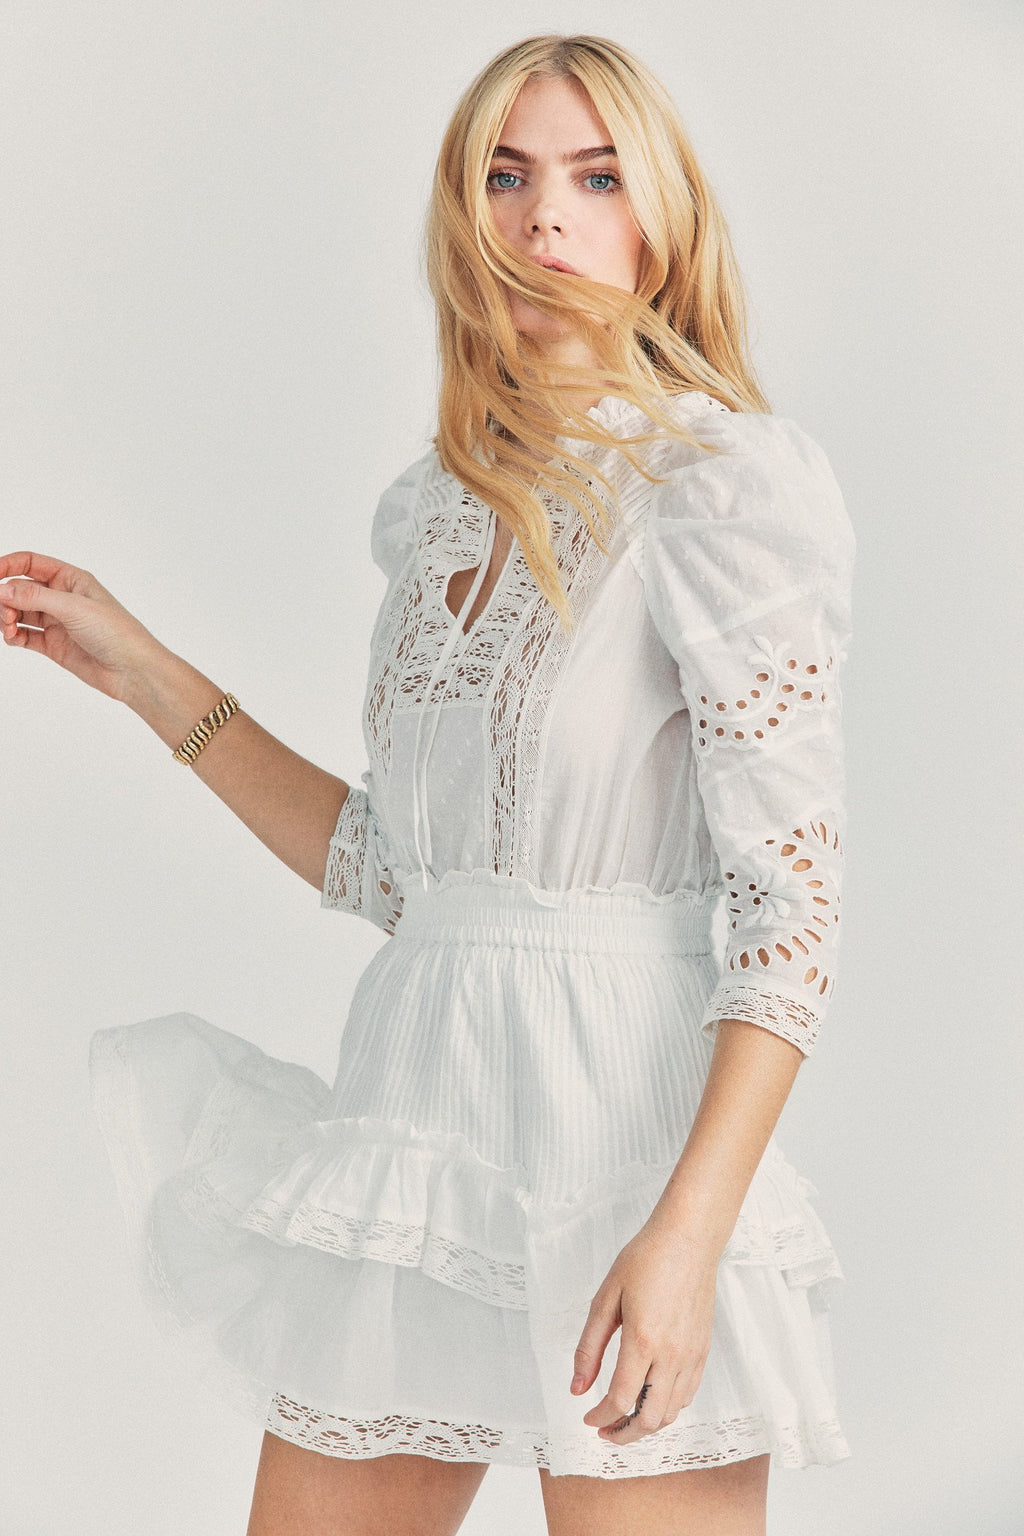 LOVESHACKFANCY ISIDORE DRESS IN WHITE